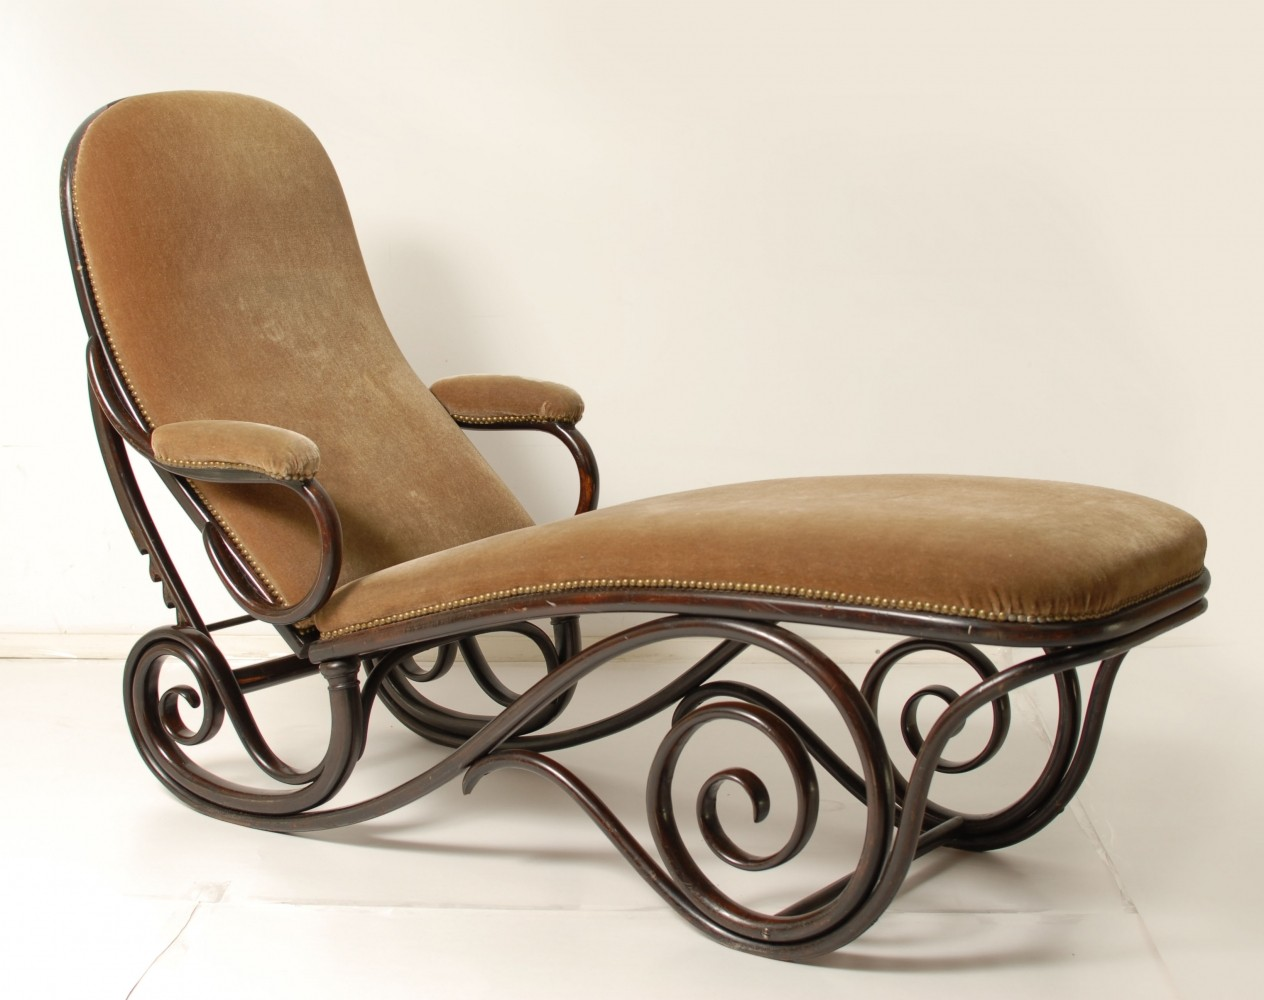 Bentwood chaise lounge lounge chair by michael thonet for for Chaise bentwood